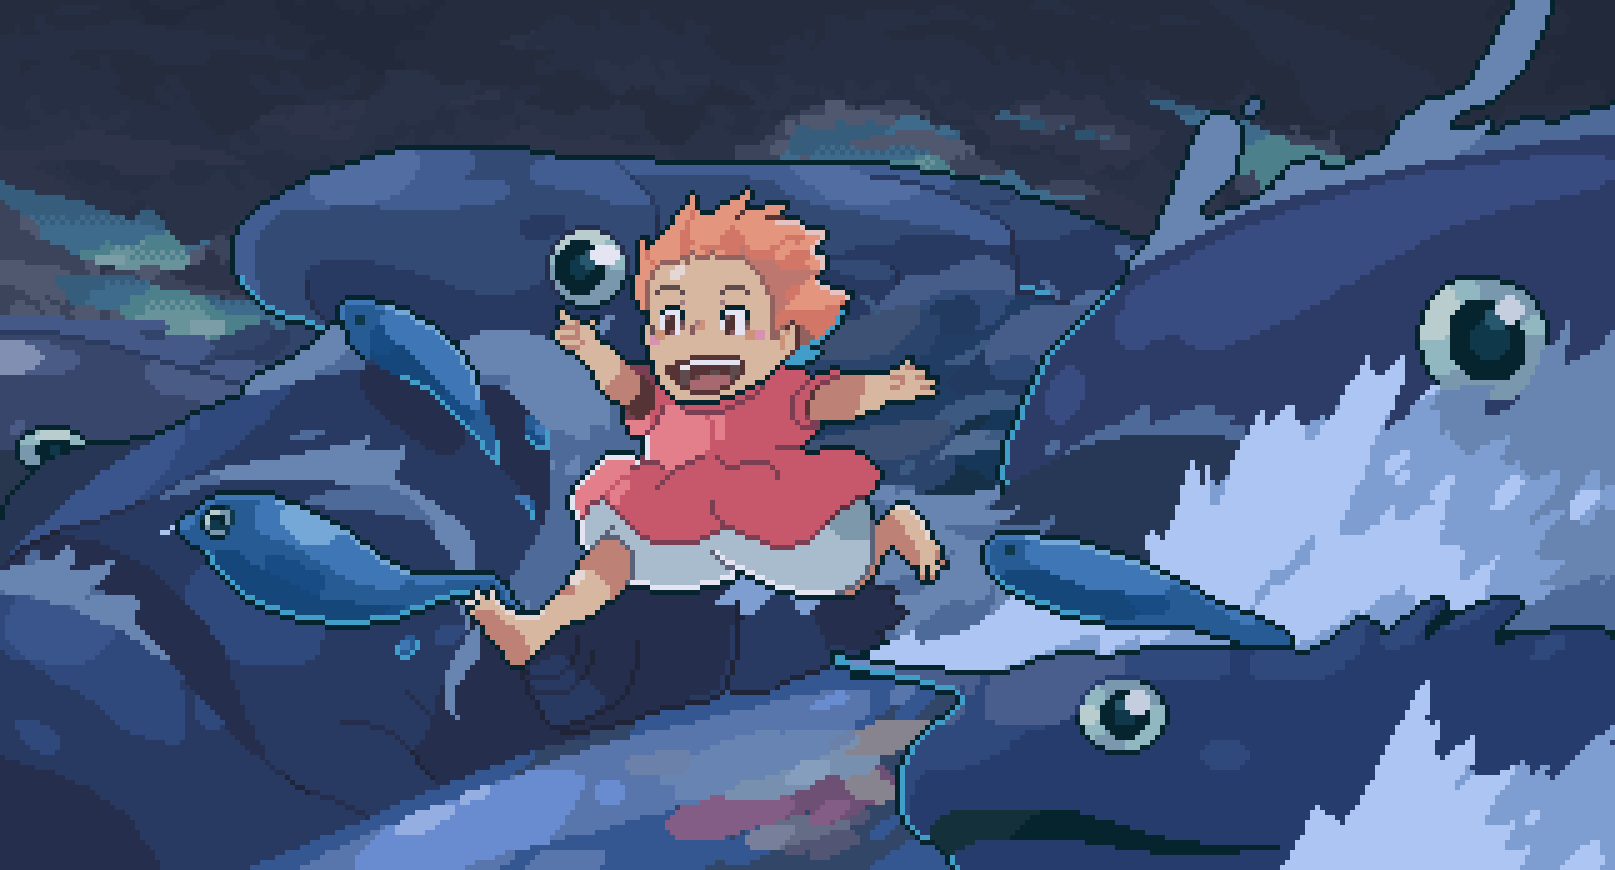 Recreated a scene from Ponyo! 🌊